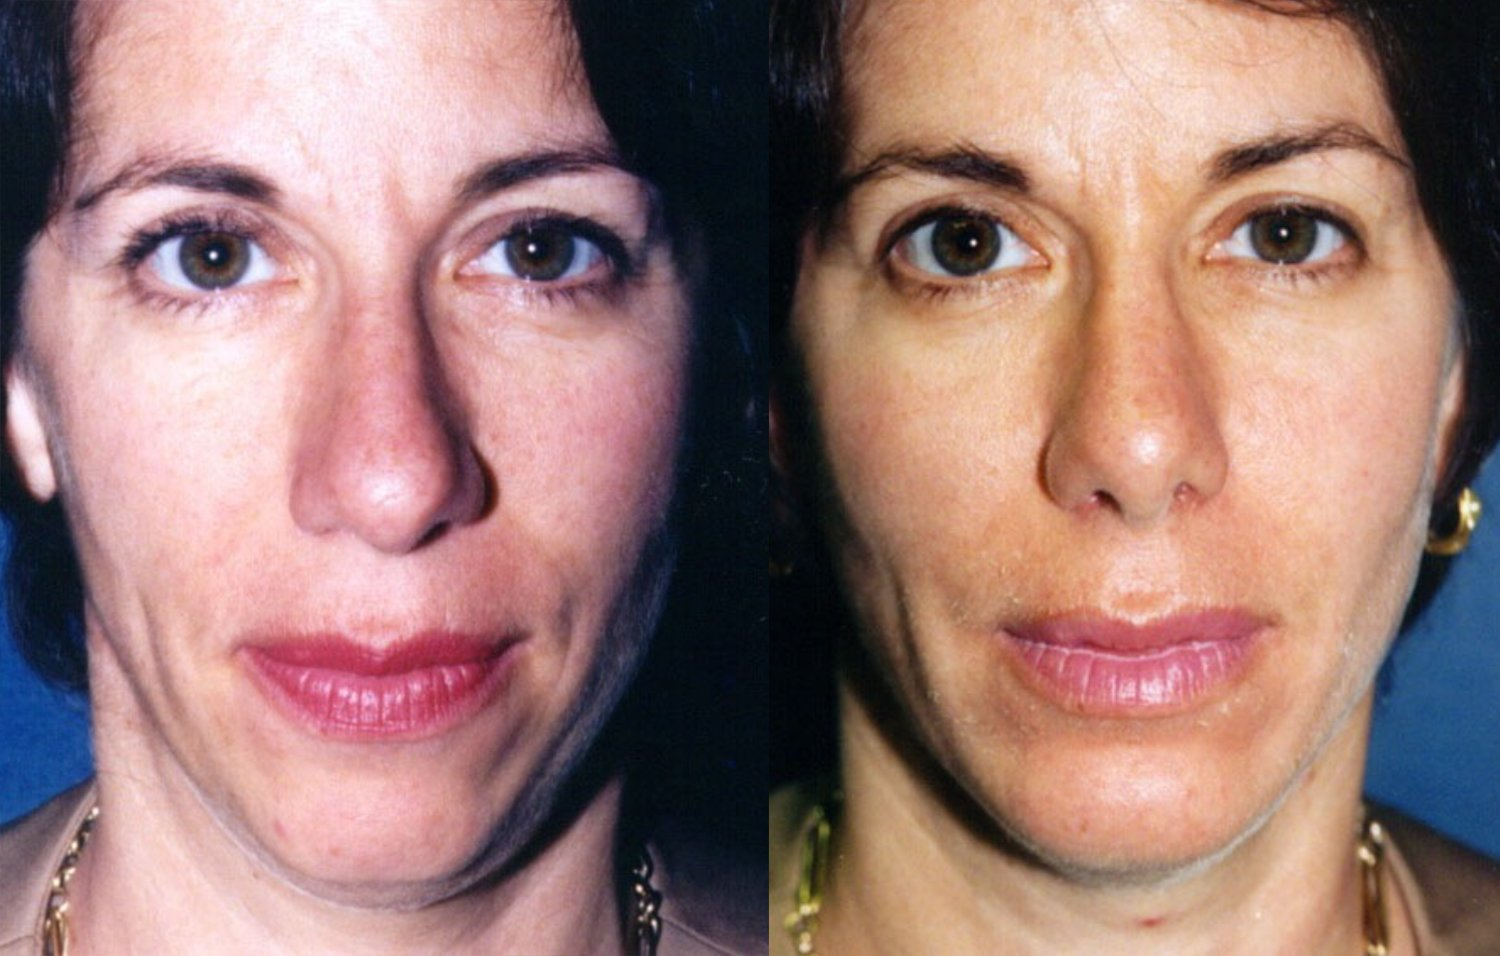 rhinoplasty without fracture, chin augmentation